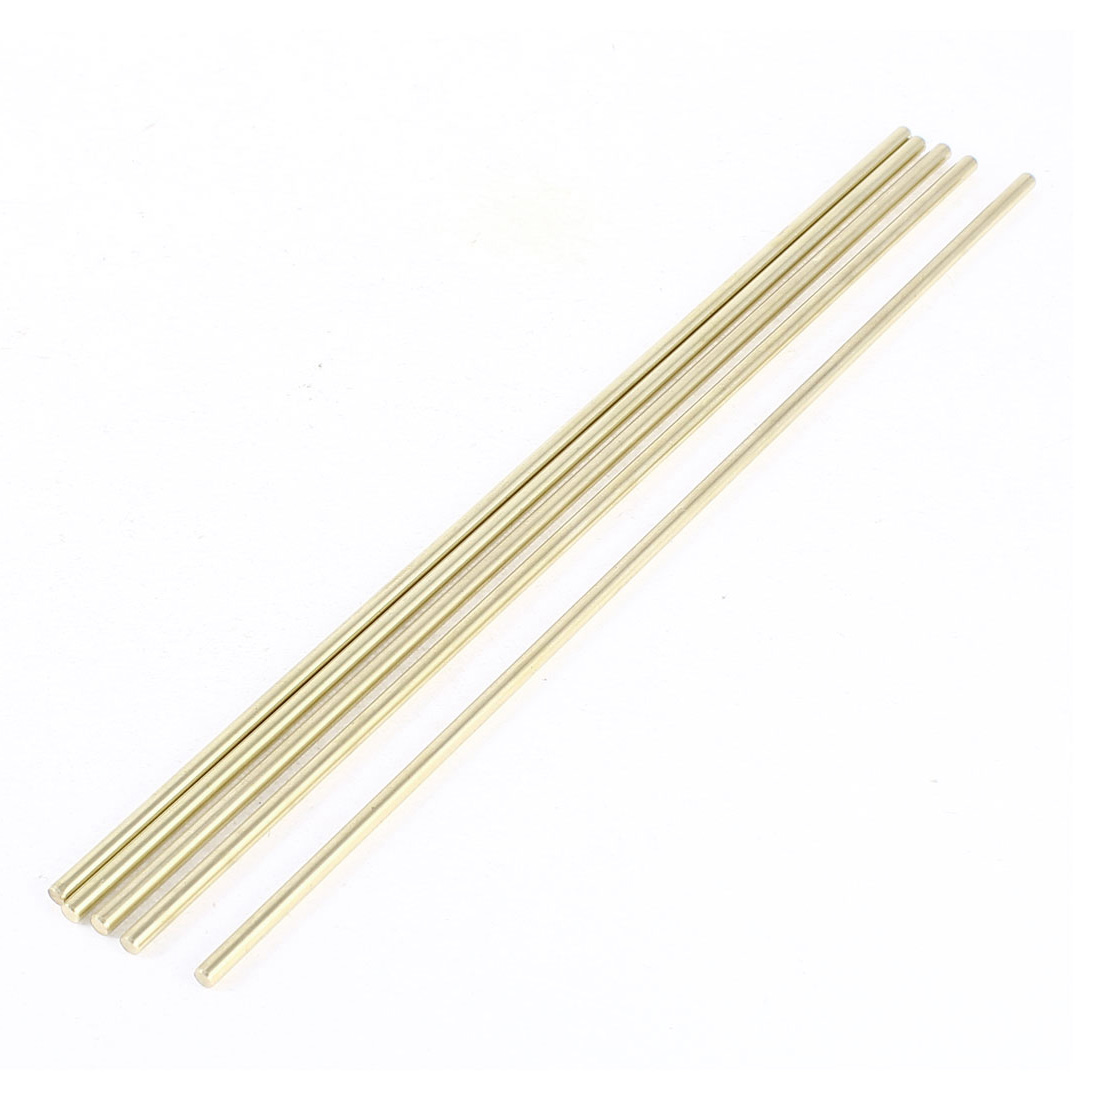 5 Pcs Car Helicopter Model Toy DIY Brass Axles Rod Bars 3mm x 130mm